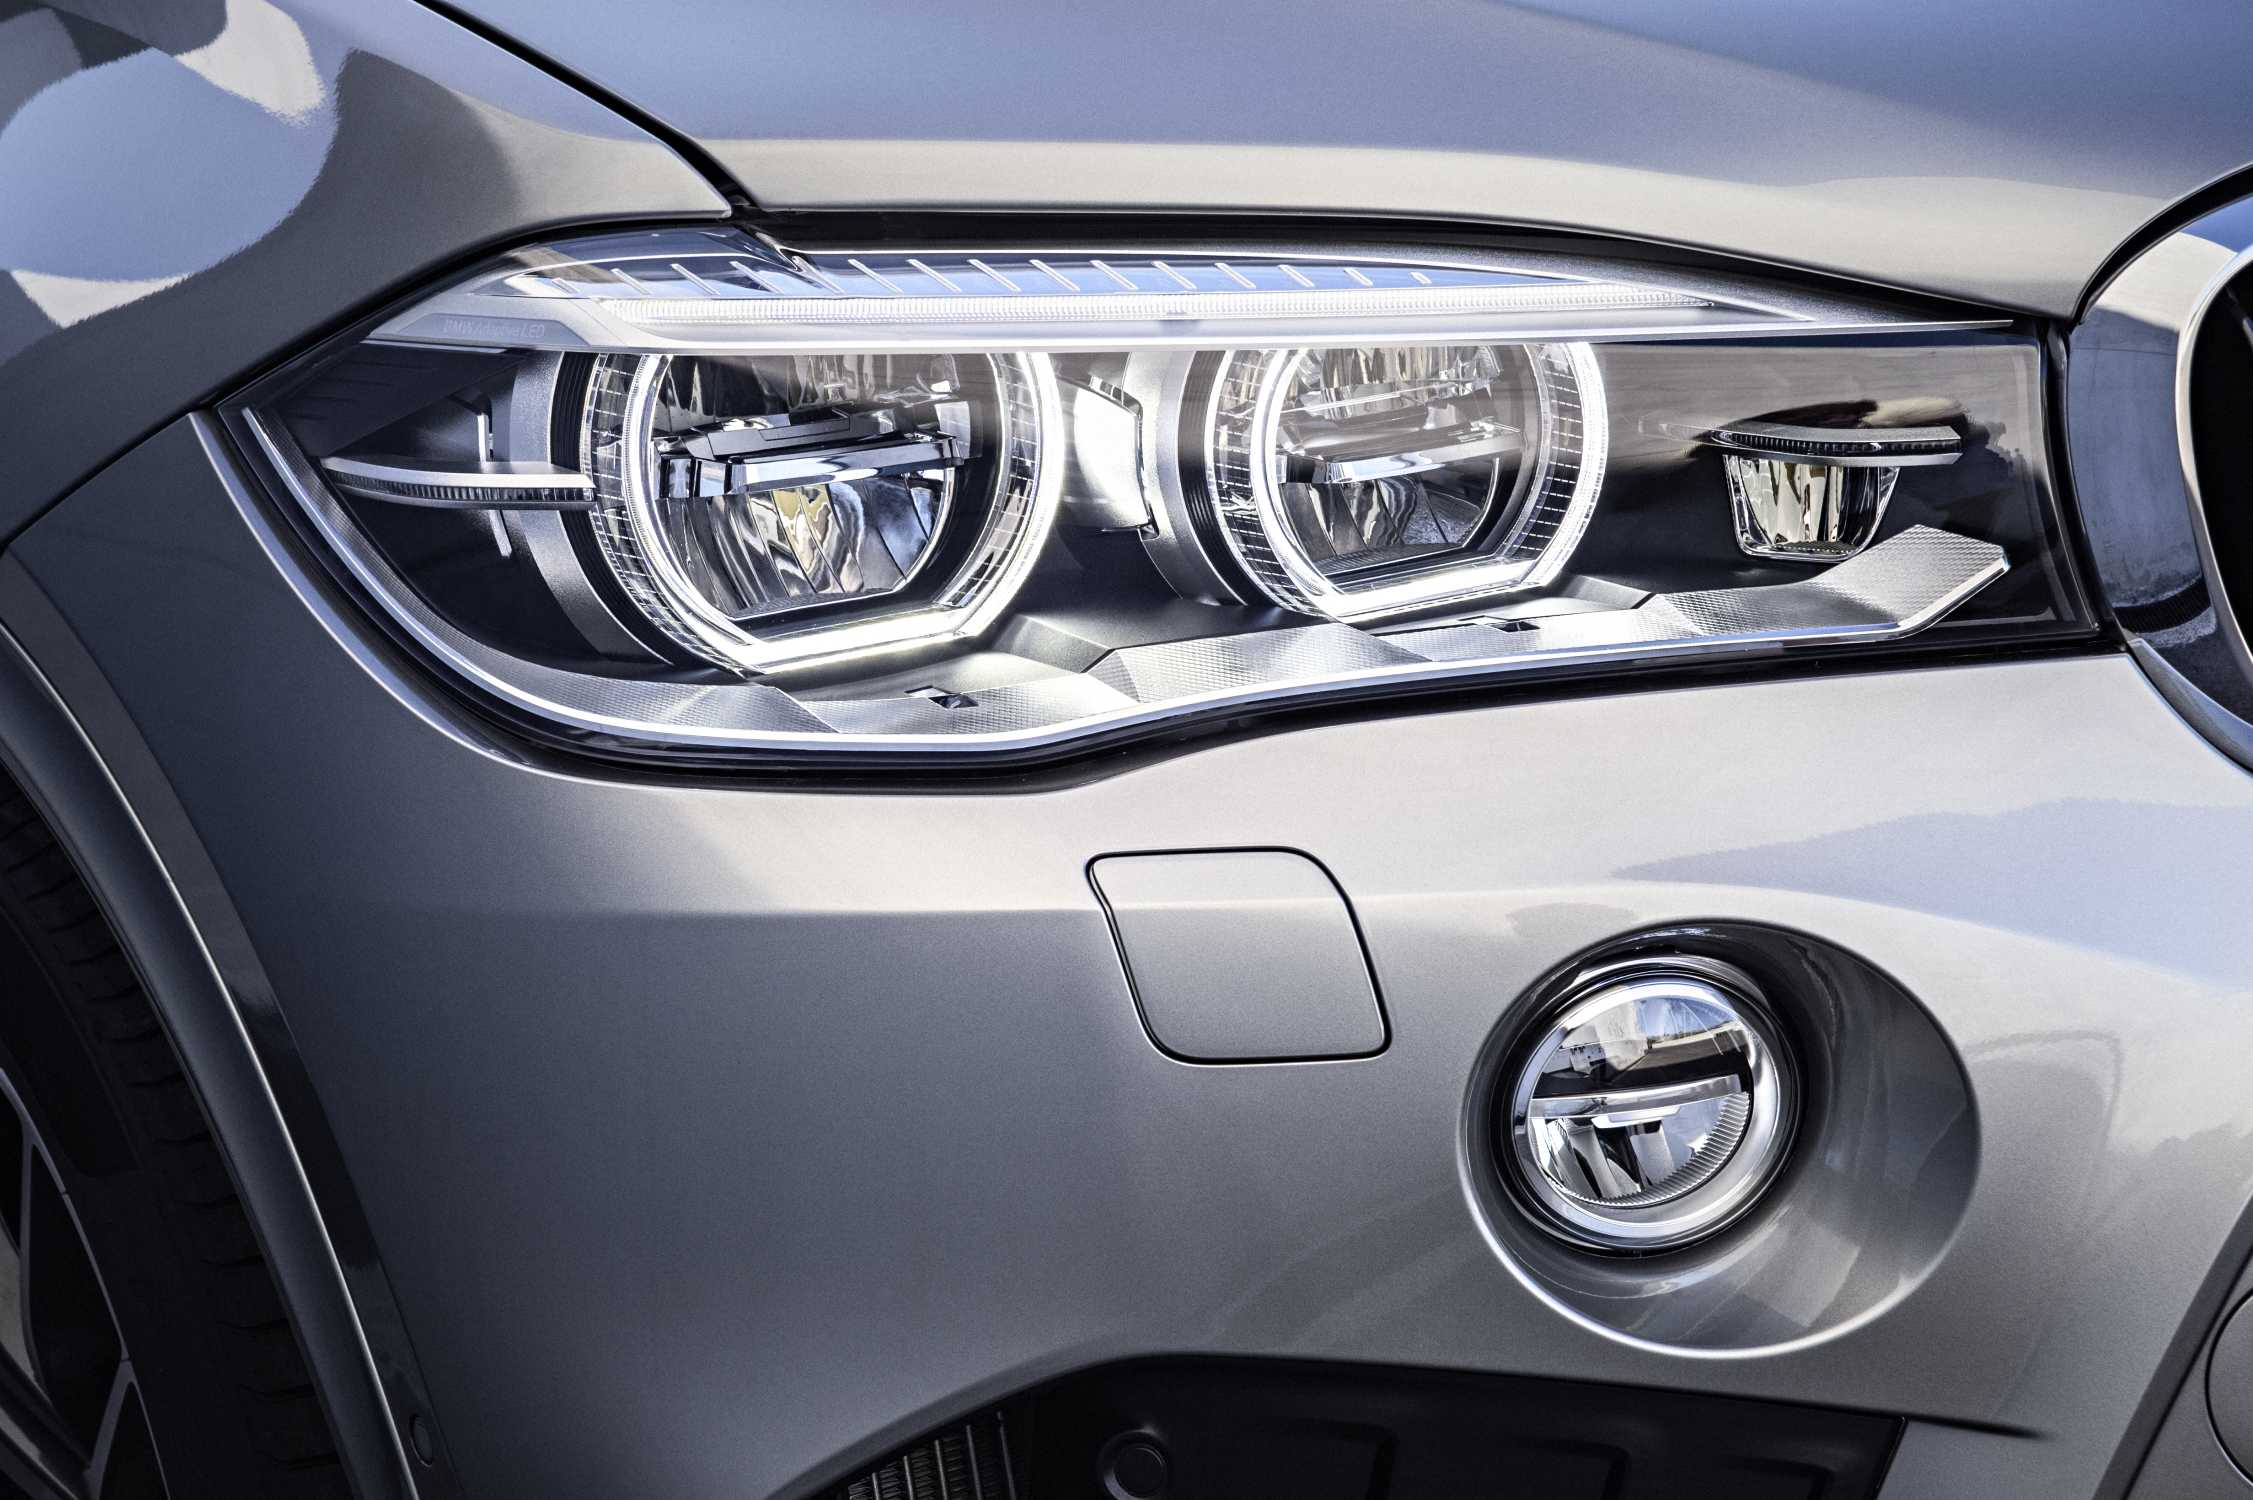 The New Bmw X5 M Adaptive Led Headlights With Bmw